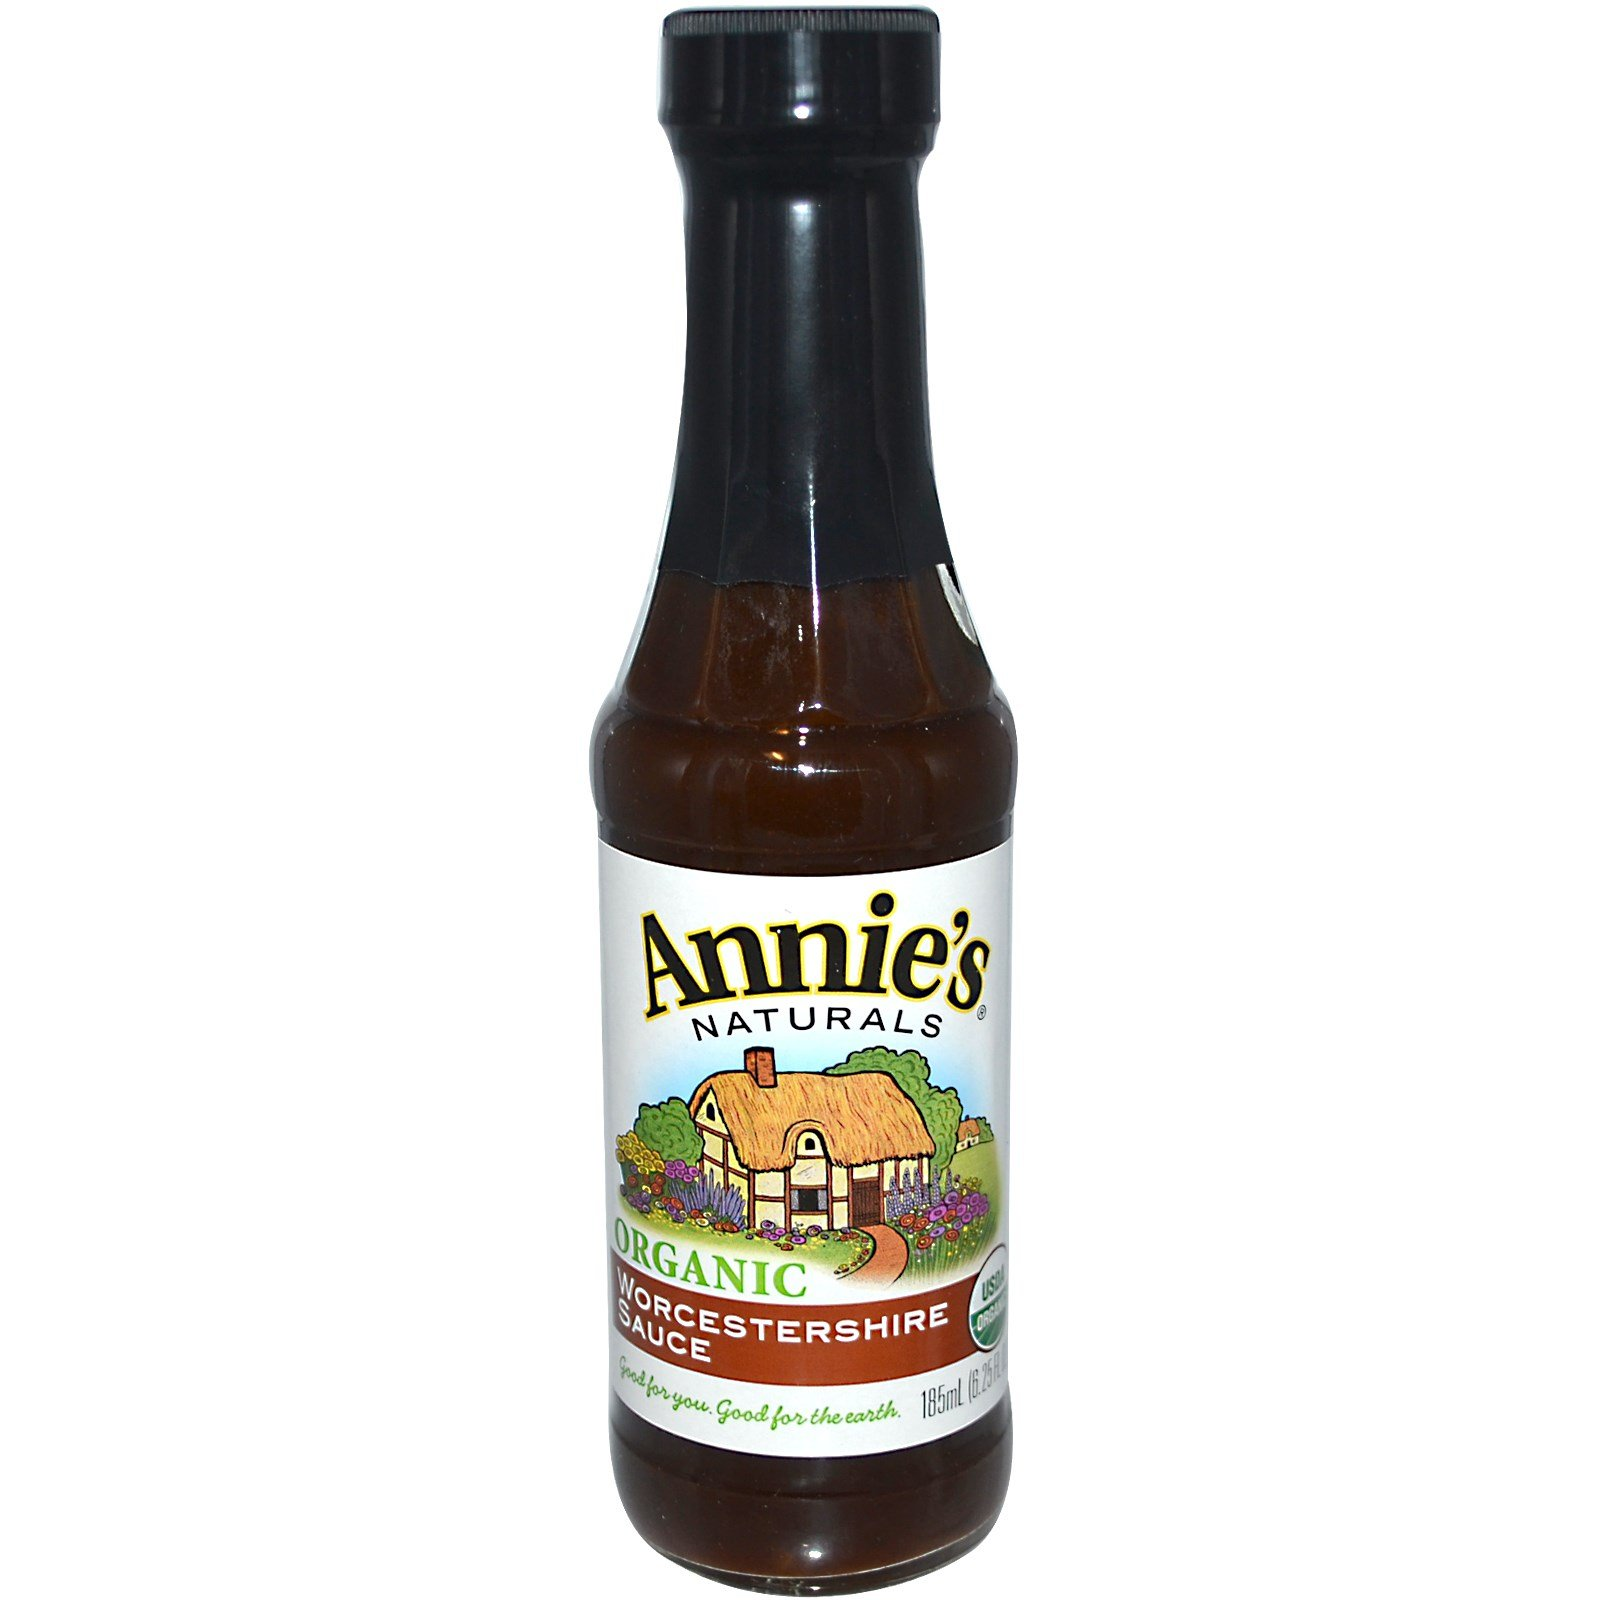 Annie's Naturals Organic Worcestershire Sauce, 6.25 Ounce (Pack of 2)